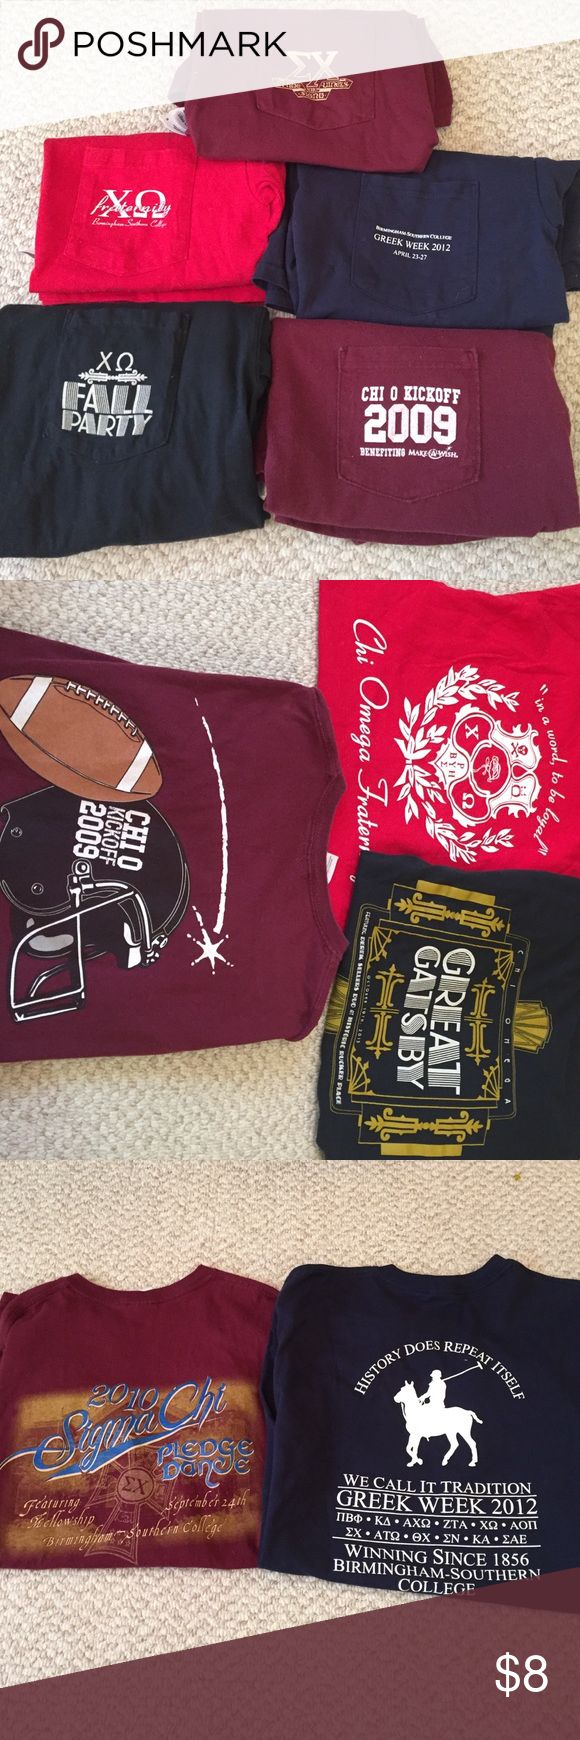 Sorority/fraternity tshirts Top row: size S, gildan brand, short sleeve, maroon color. Second row: size S, Hanes brand, short sleeve, red color. Size M, gildan brand, short sleeve, navy blue color. Third row: size M, comfort colors brand, short sleeve, black color. Size M, gildan brand, short sleeve, maroon color. All individually 8 but will bundle. Comfort colors  Tops Tees - Short Sleeve